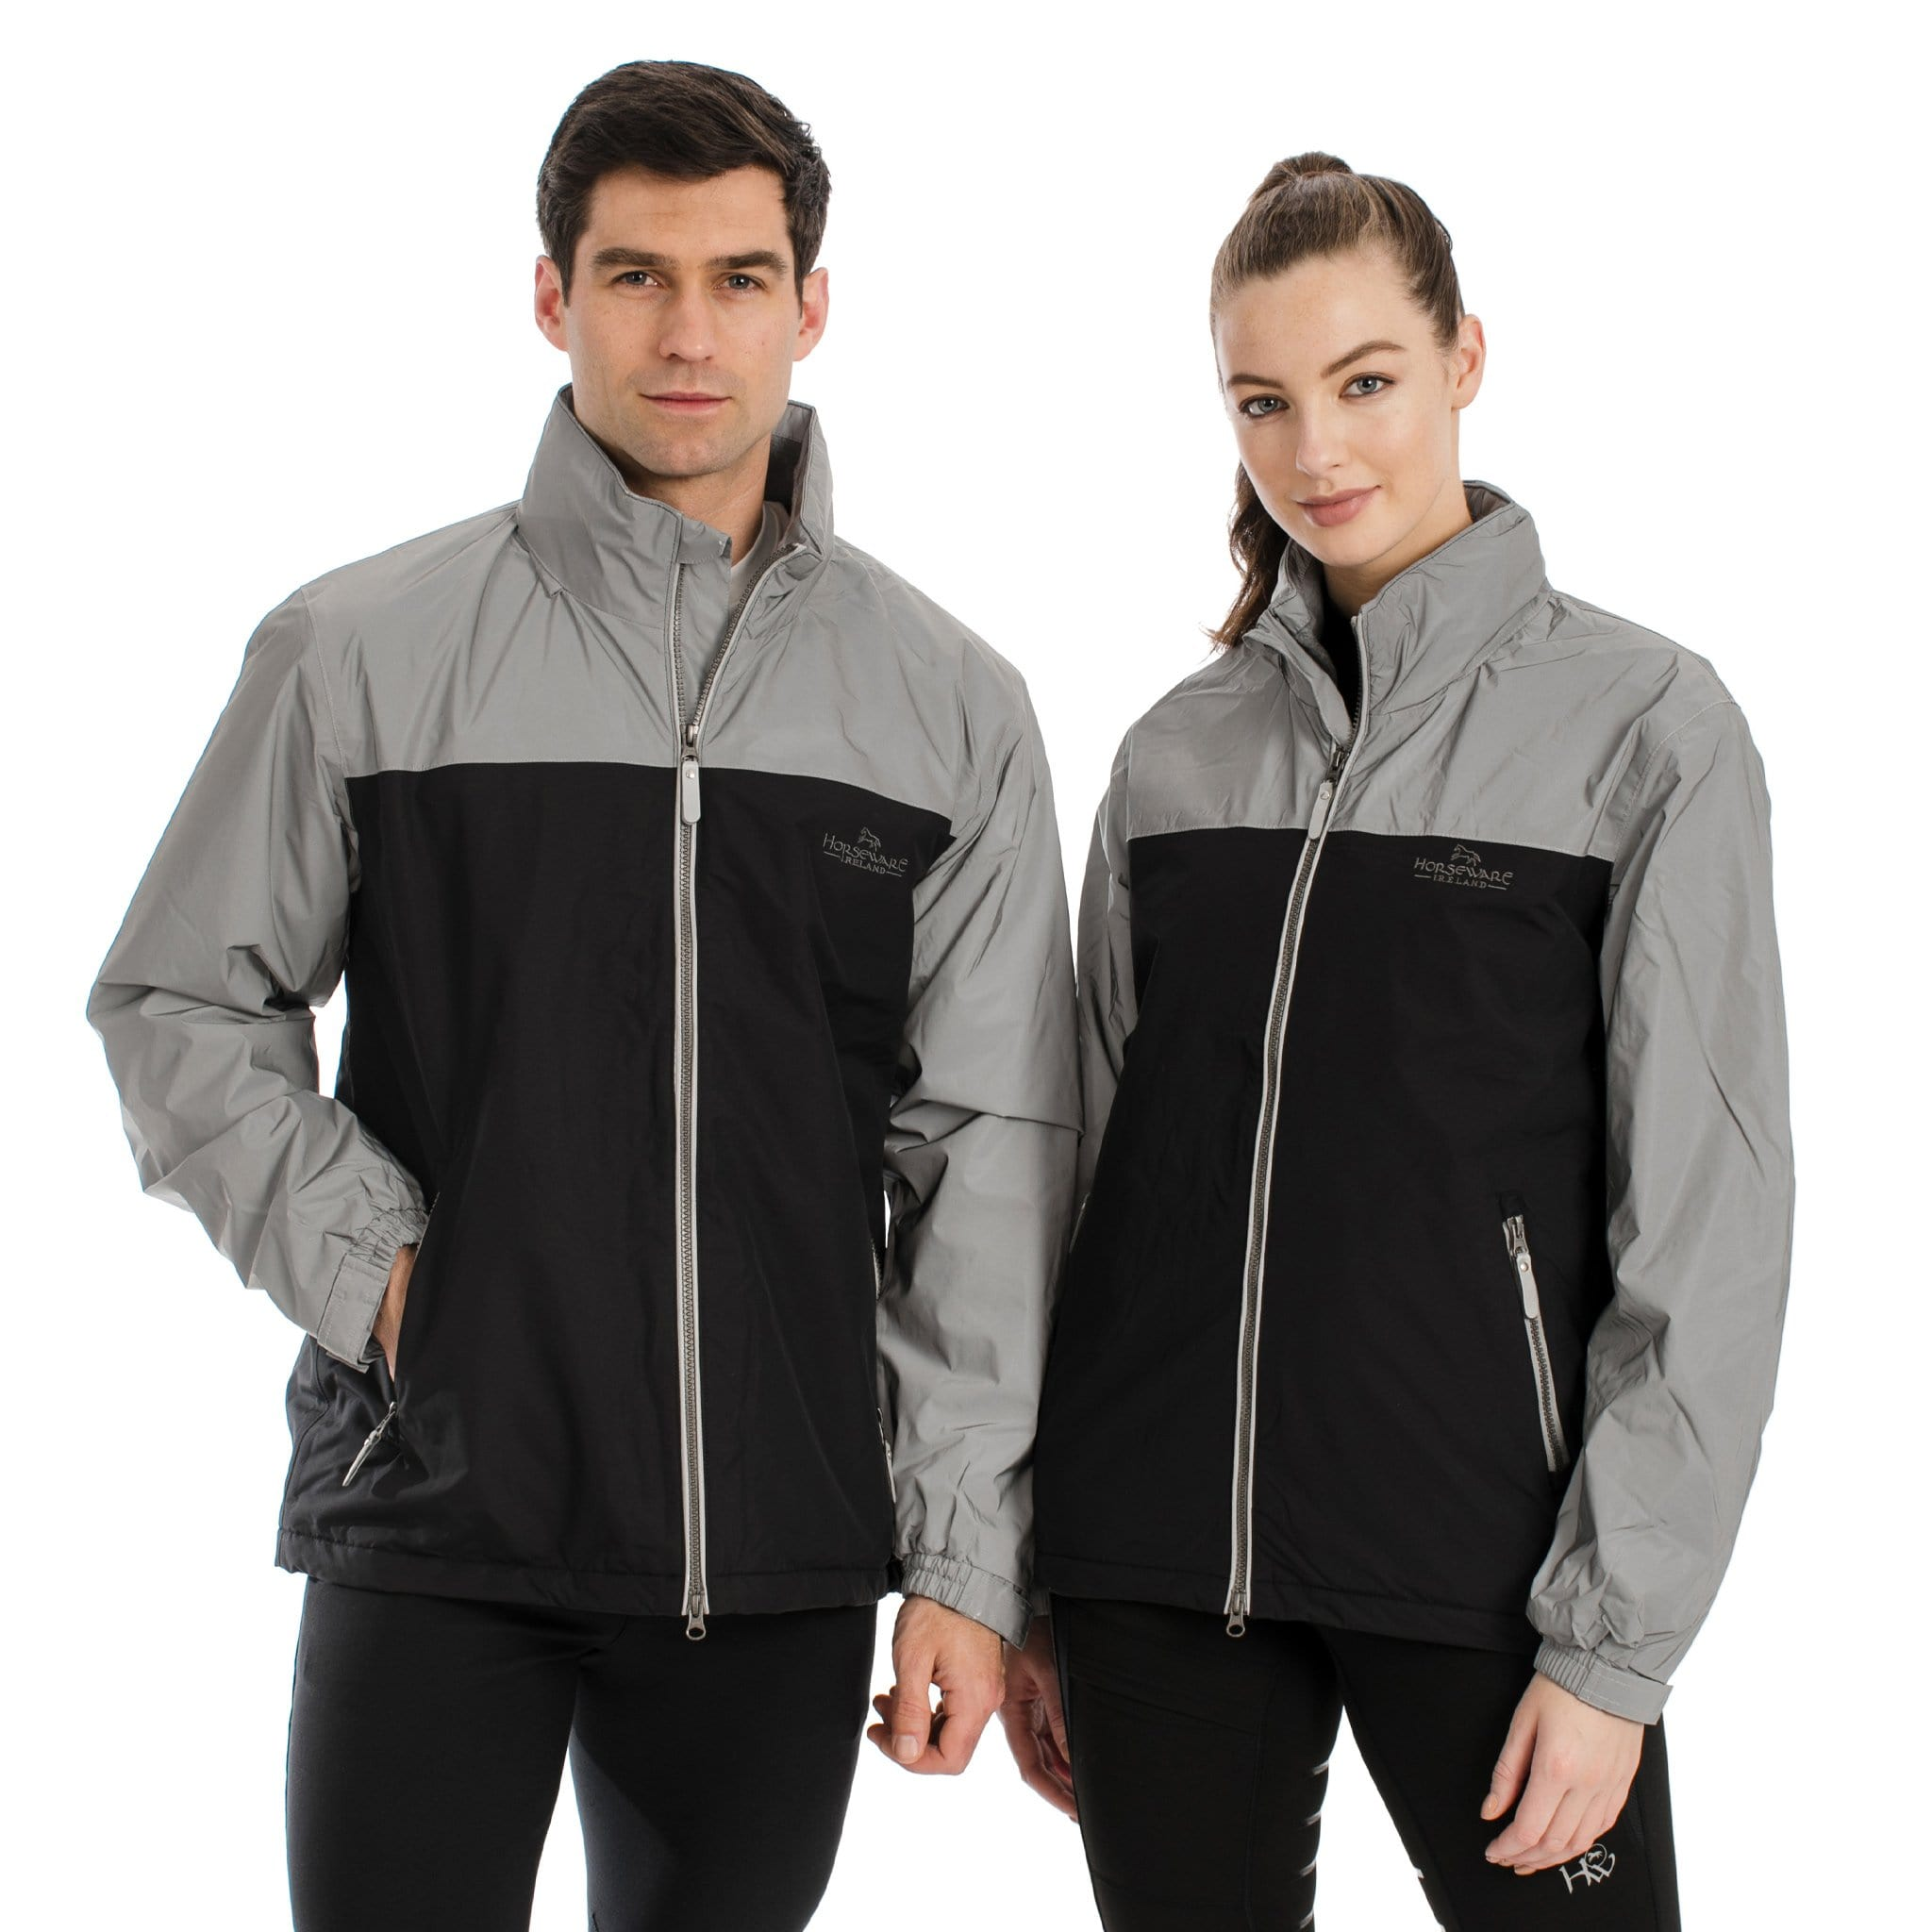 Horseware Corrib Reflective Jacket CBHCH2 Male and Female Model Front